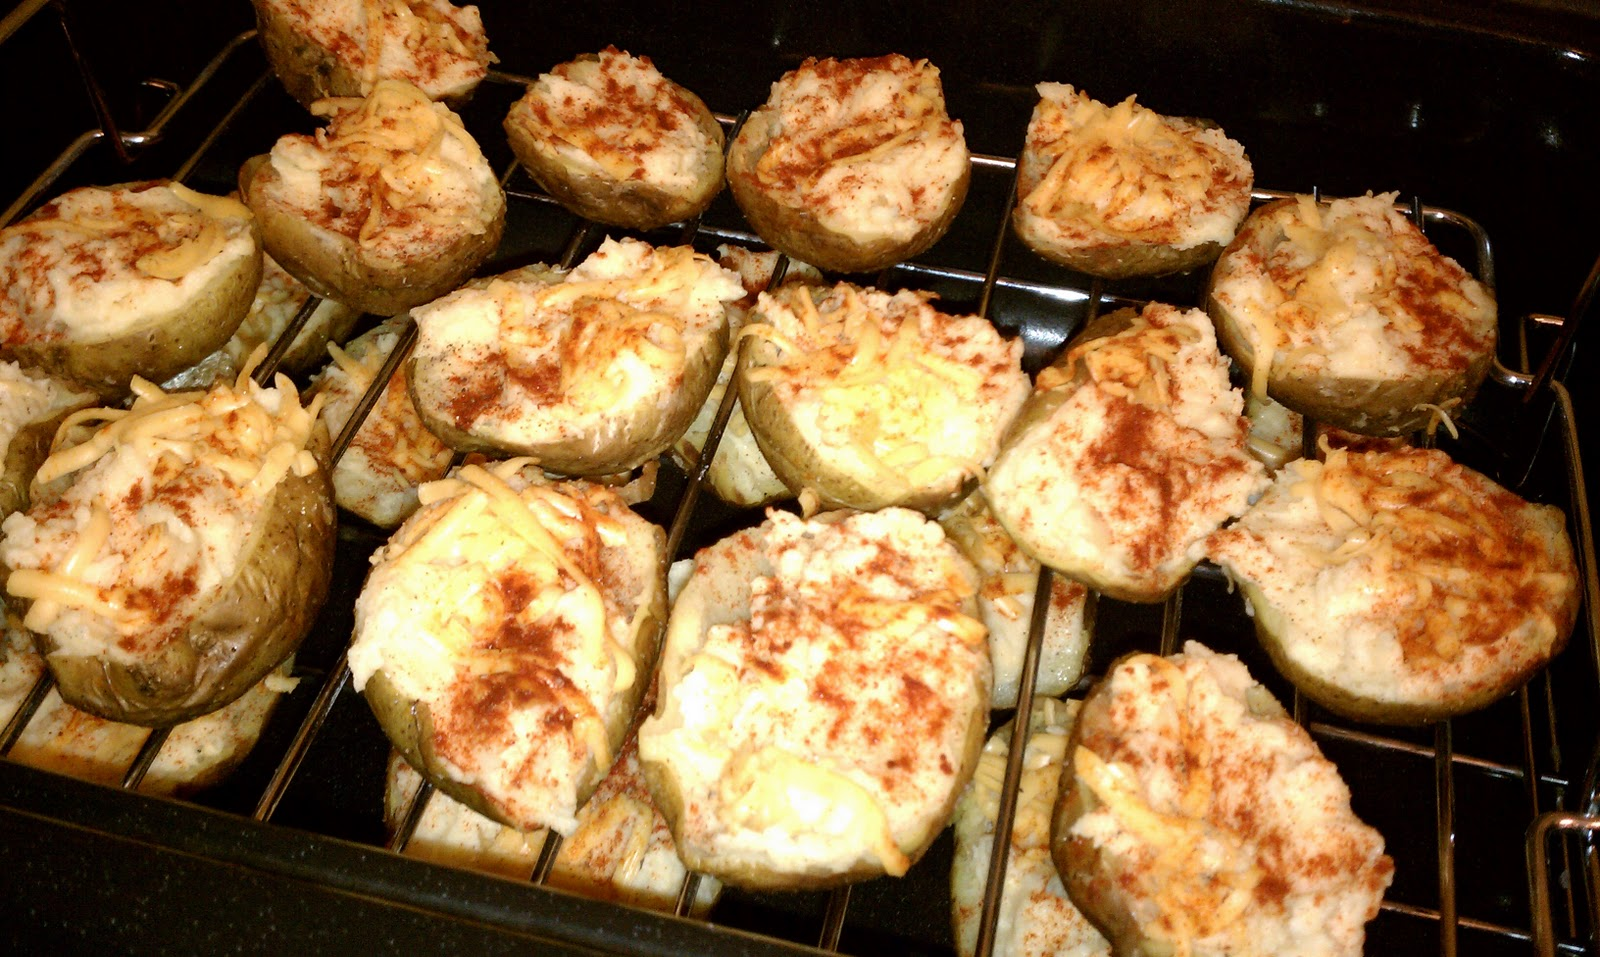 Shrimp13's Blog: Twice Baked Potatoes with Smoked Paprika